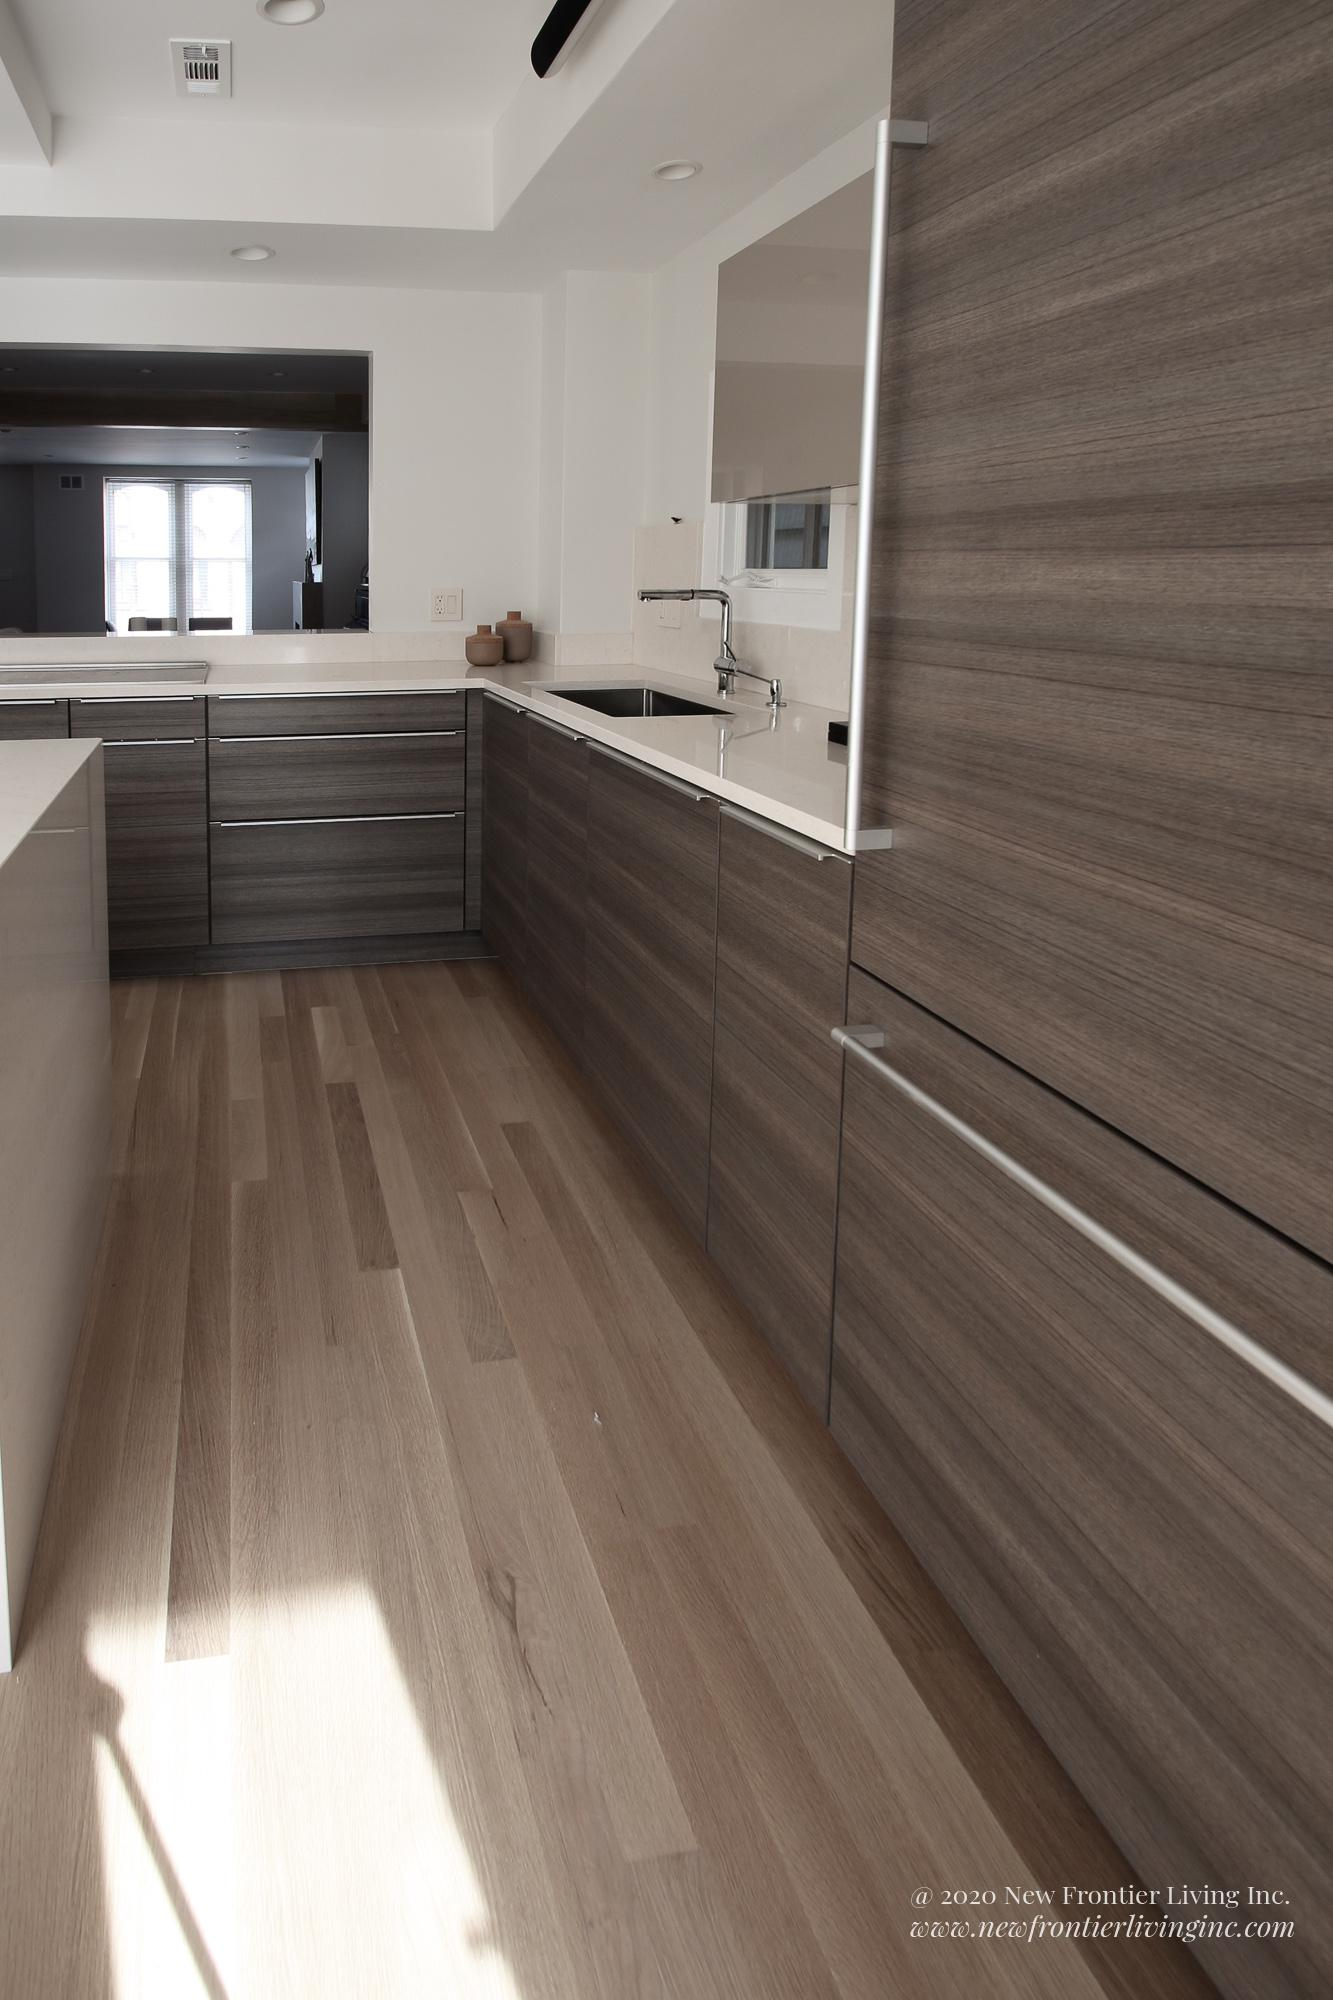 Dark brown and tall kitchen cabinets on the entire wall, sink on the right